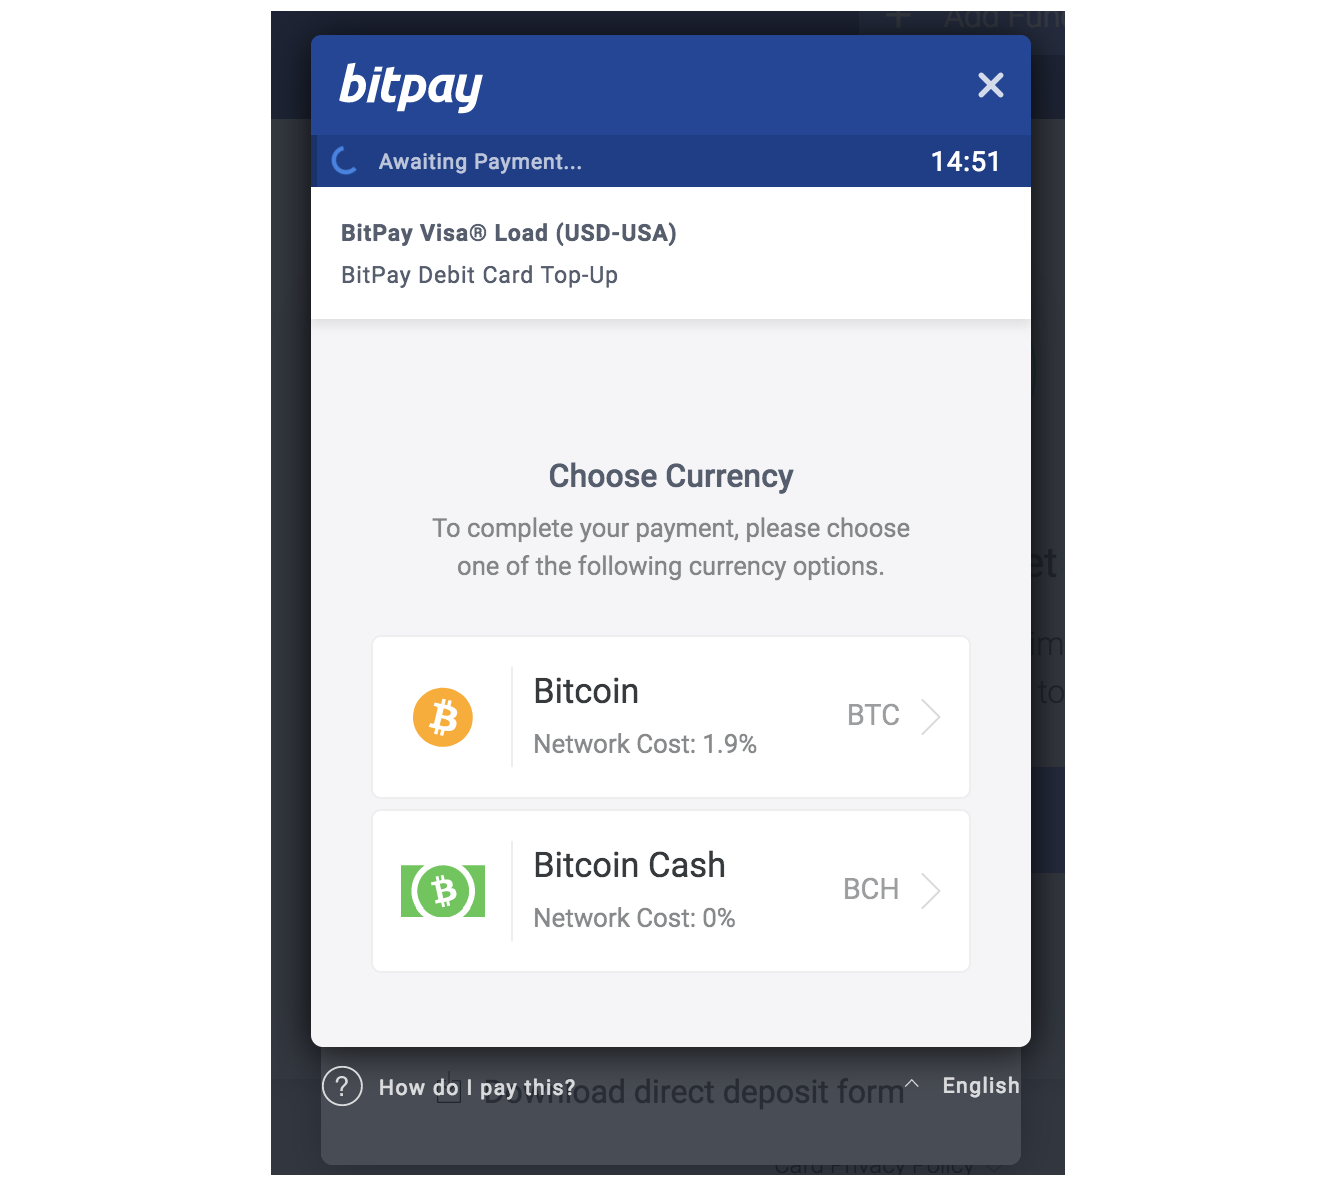 bitpay card image